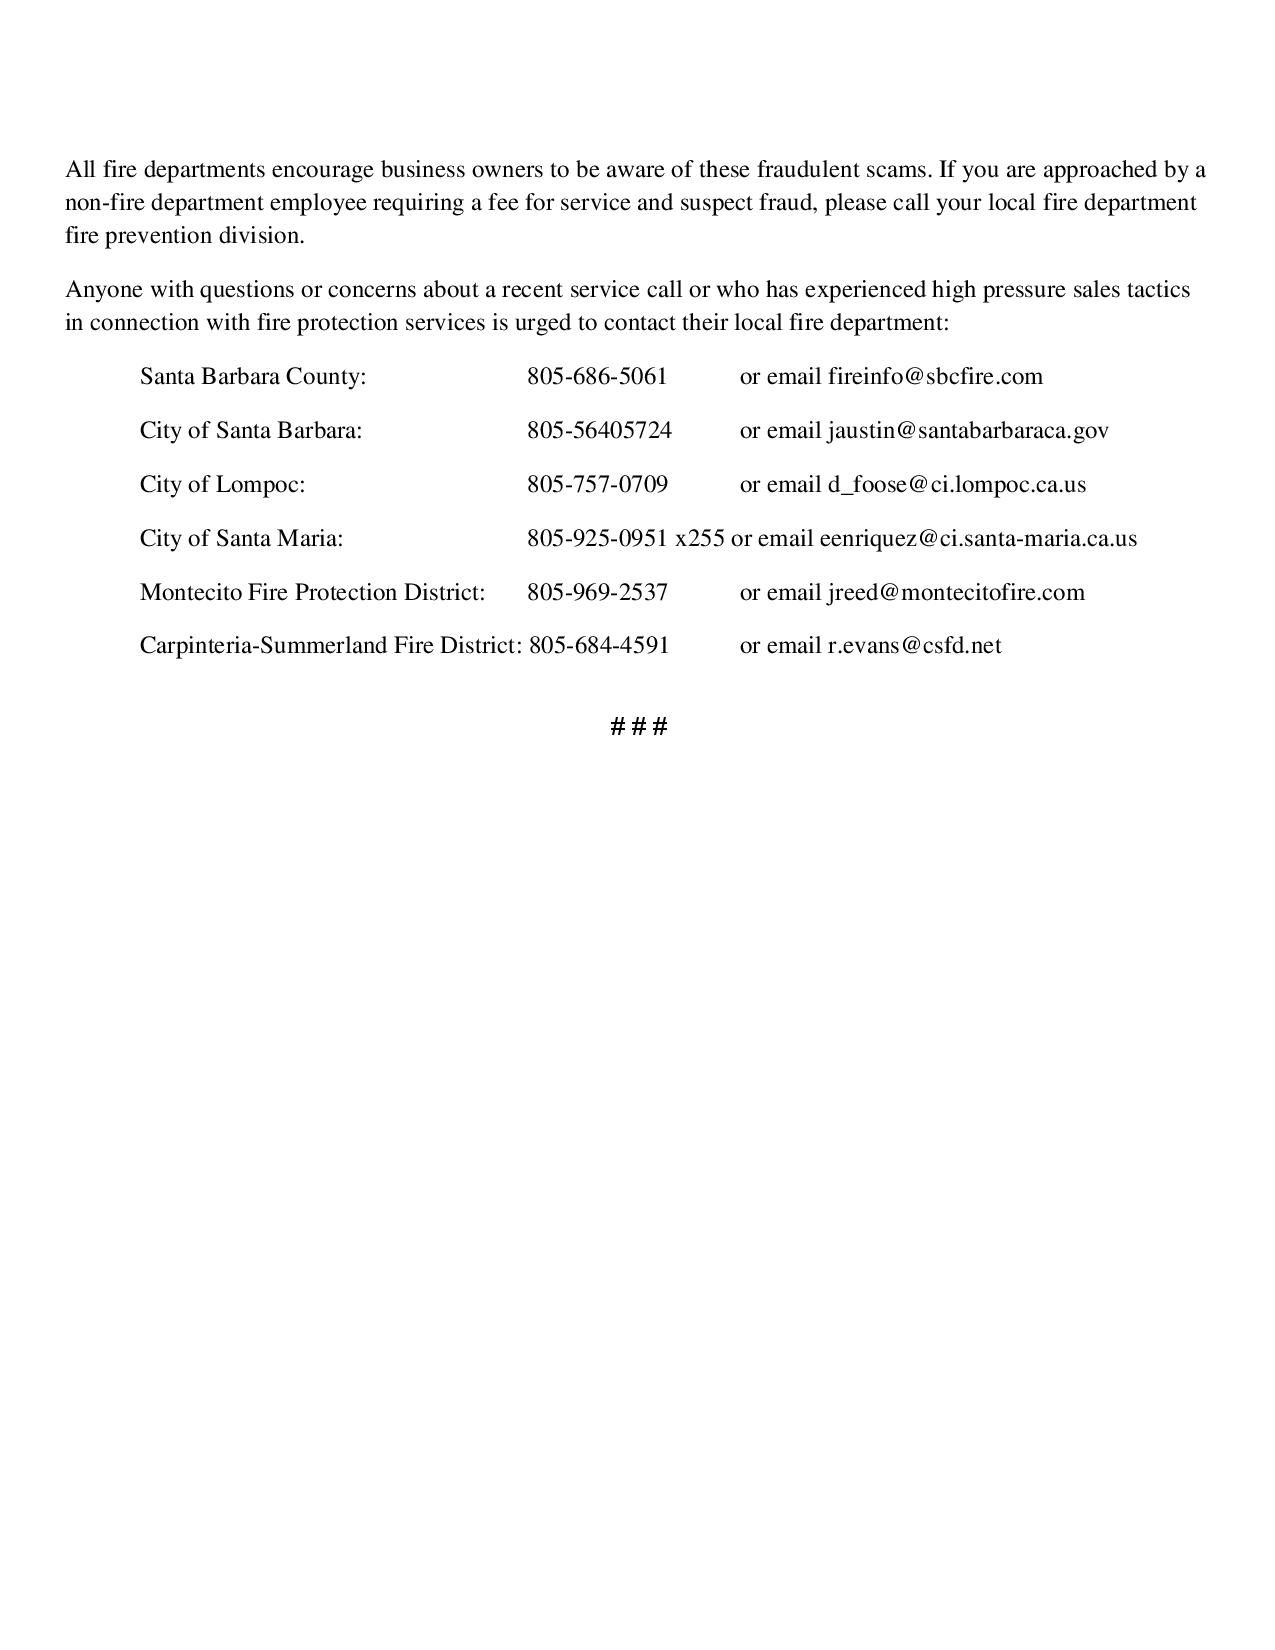 Beware of Fraudulent Fire Inspections and Services-pg2